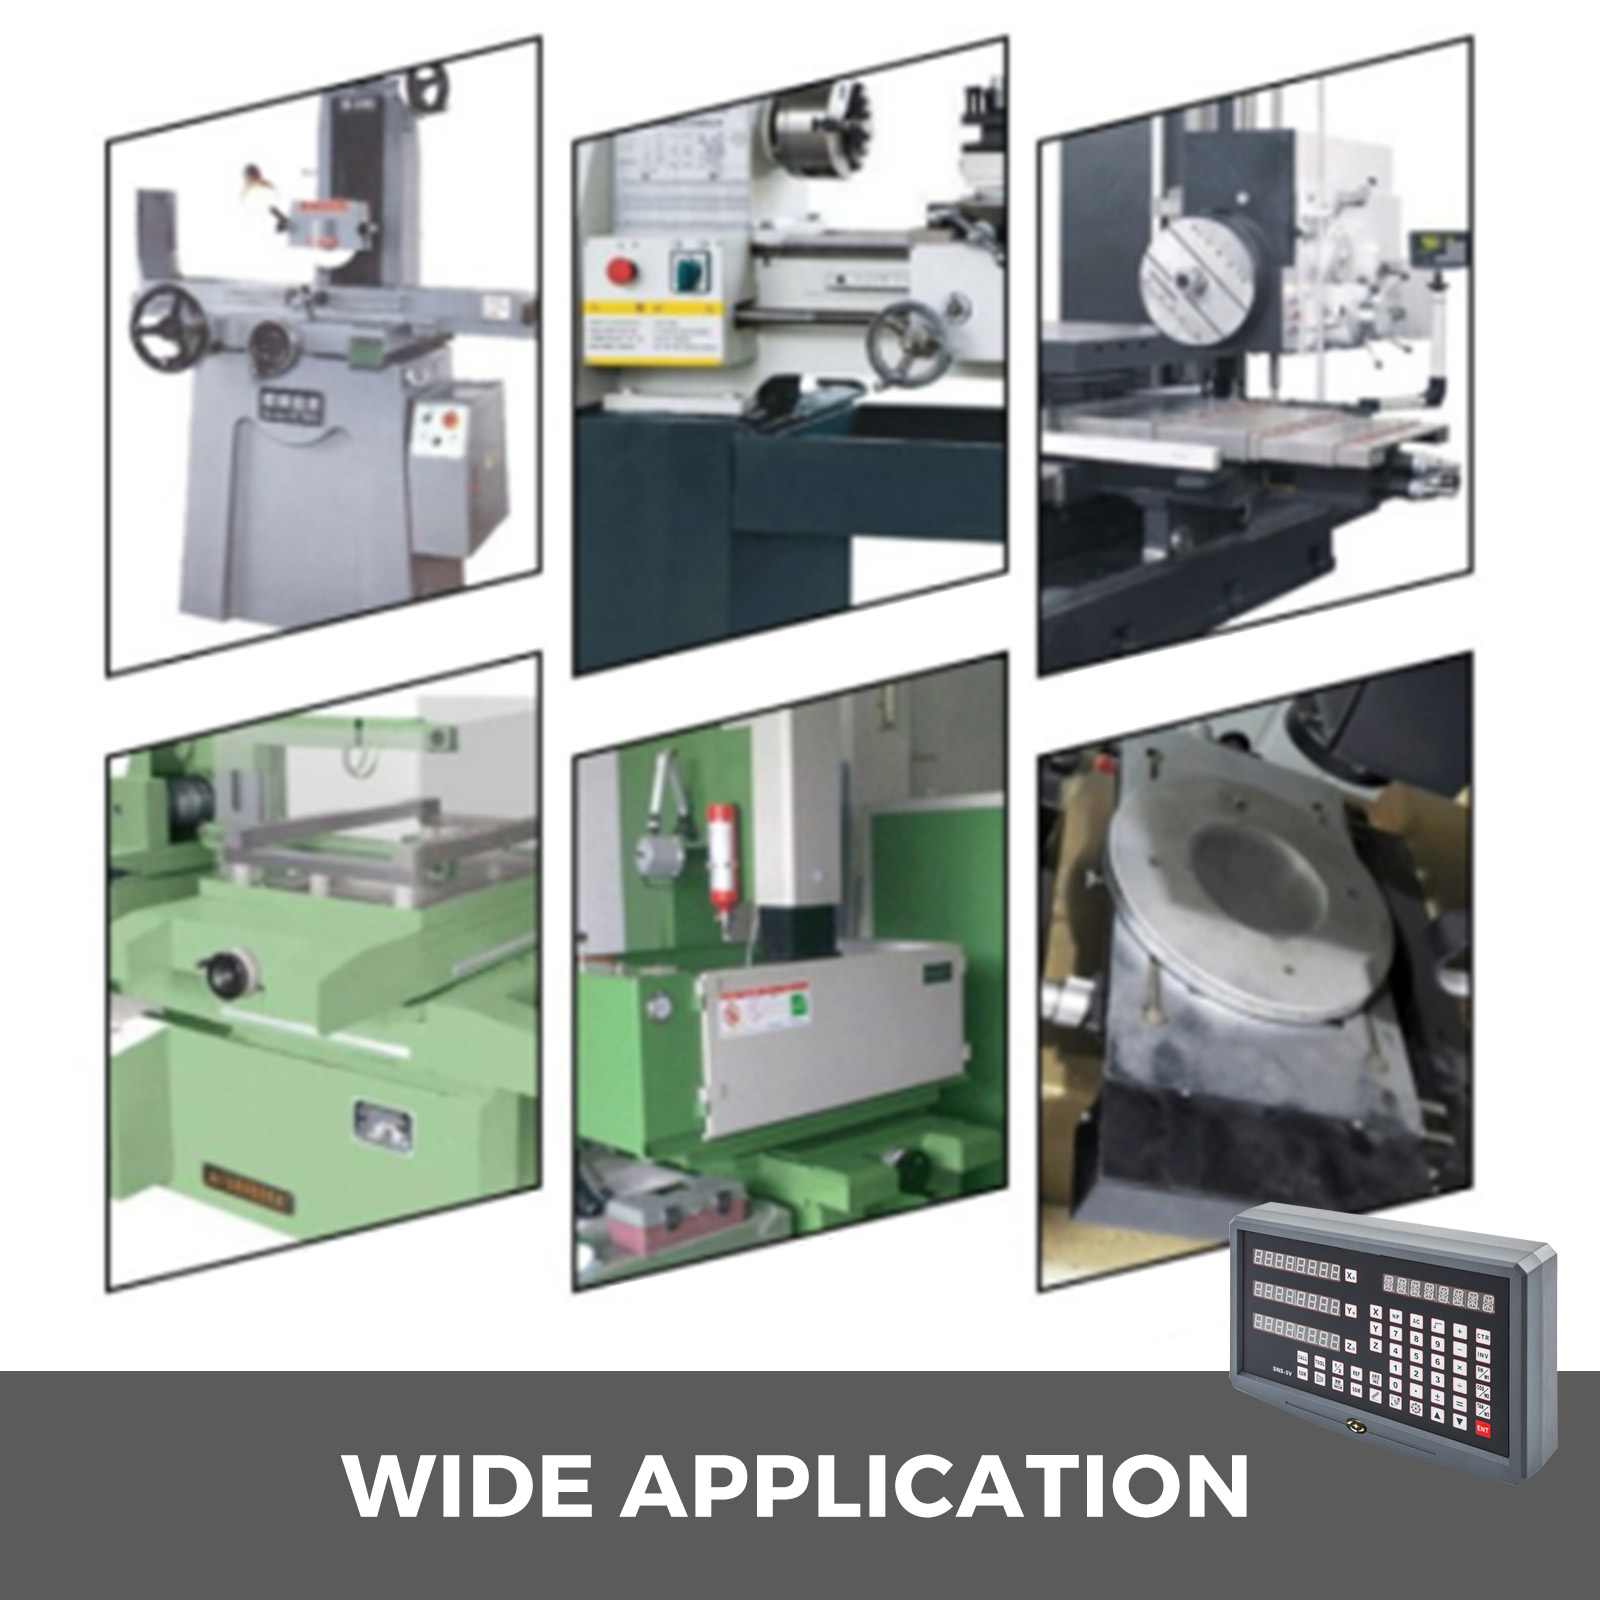 2-3-Axis-Digital-Readout-Linear-Scale-Double-Seal-5-Bearing-System-Grinding thumbnail 267